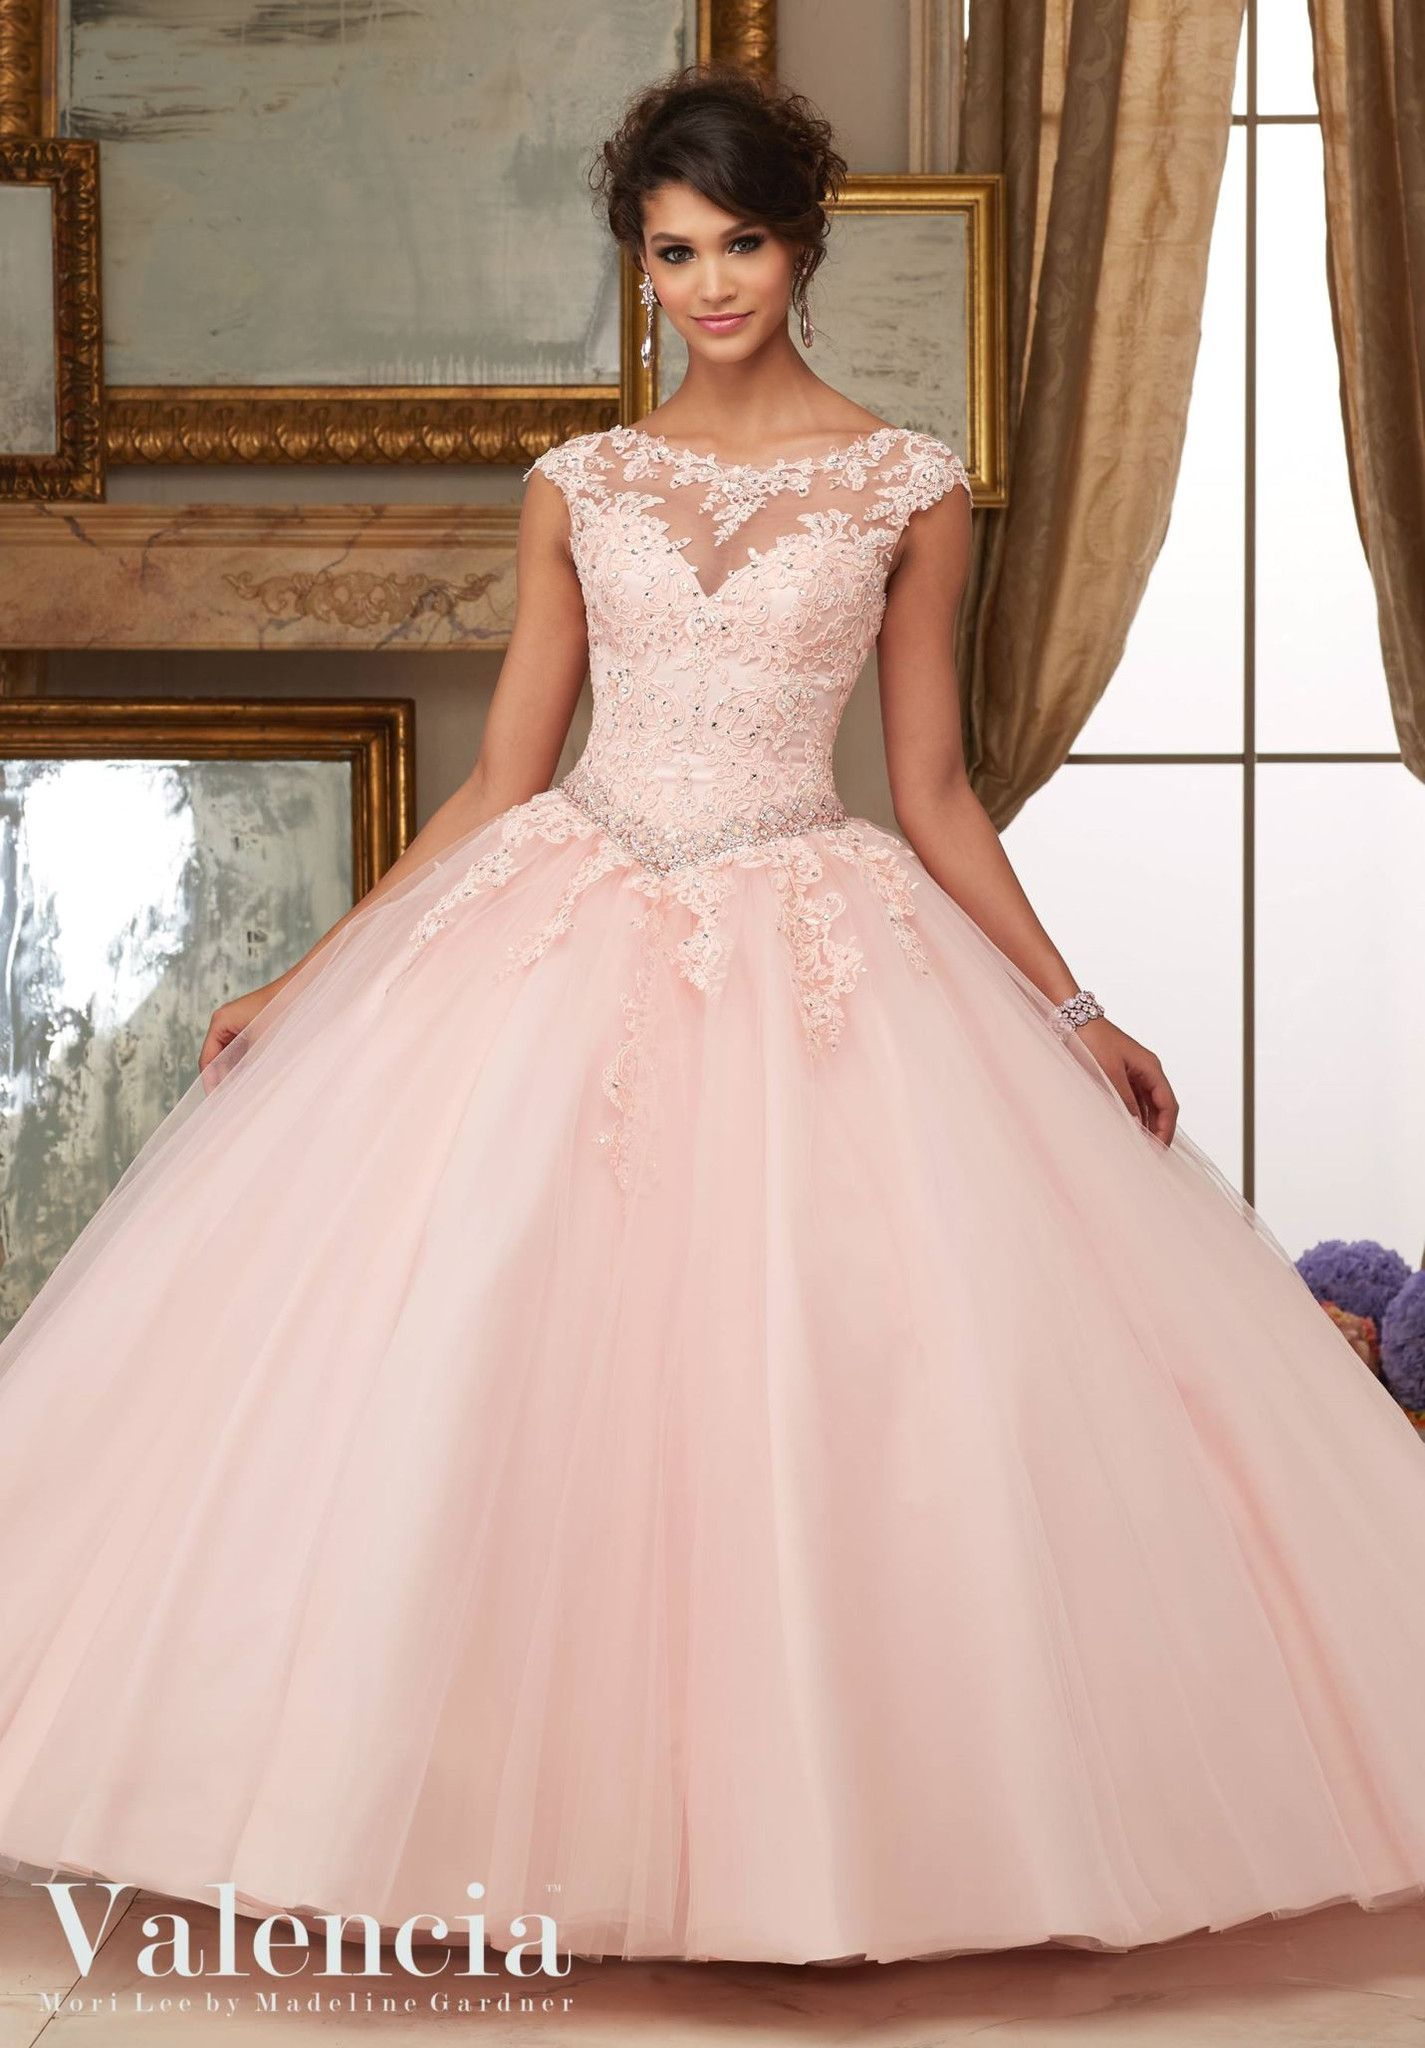 Mori Lee Valencia Quinceanera Dress 60006 | Quinceañera | Pinterest ...